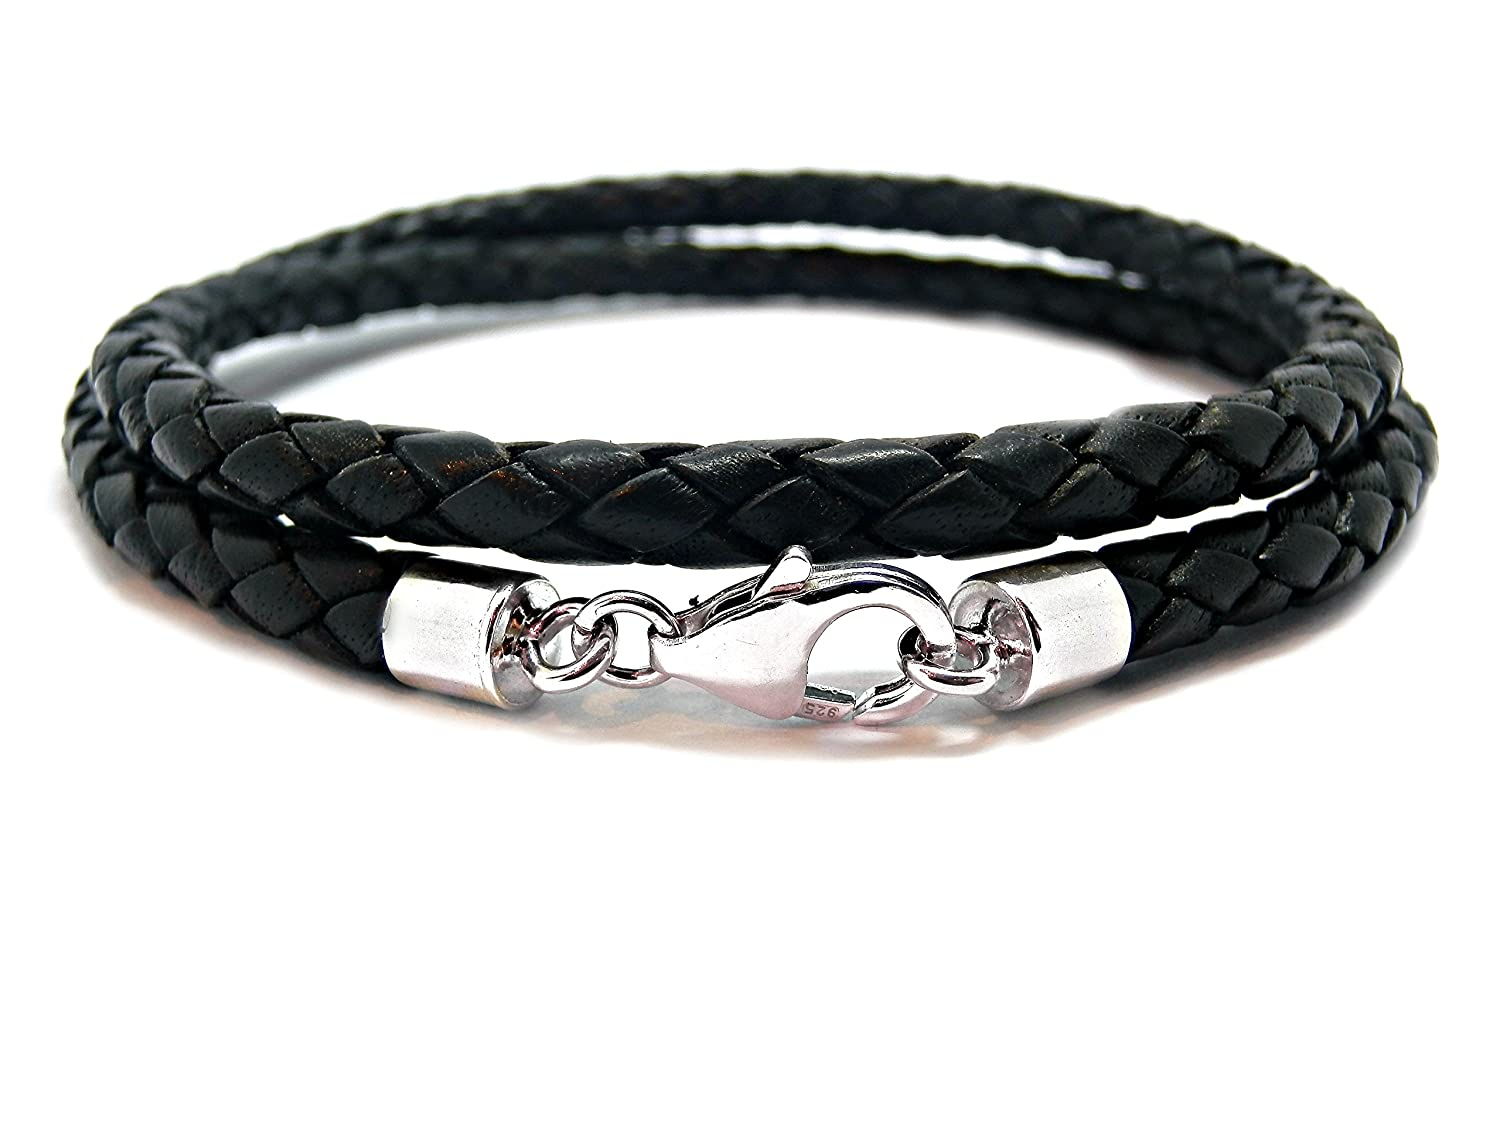 MENS LEATHER BRACELET-CHUNKY BRAIDED 5mm 925 STERLING SILVER TWIST CLASP